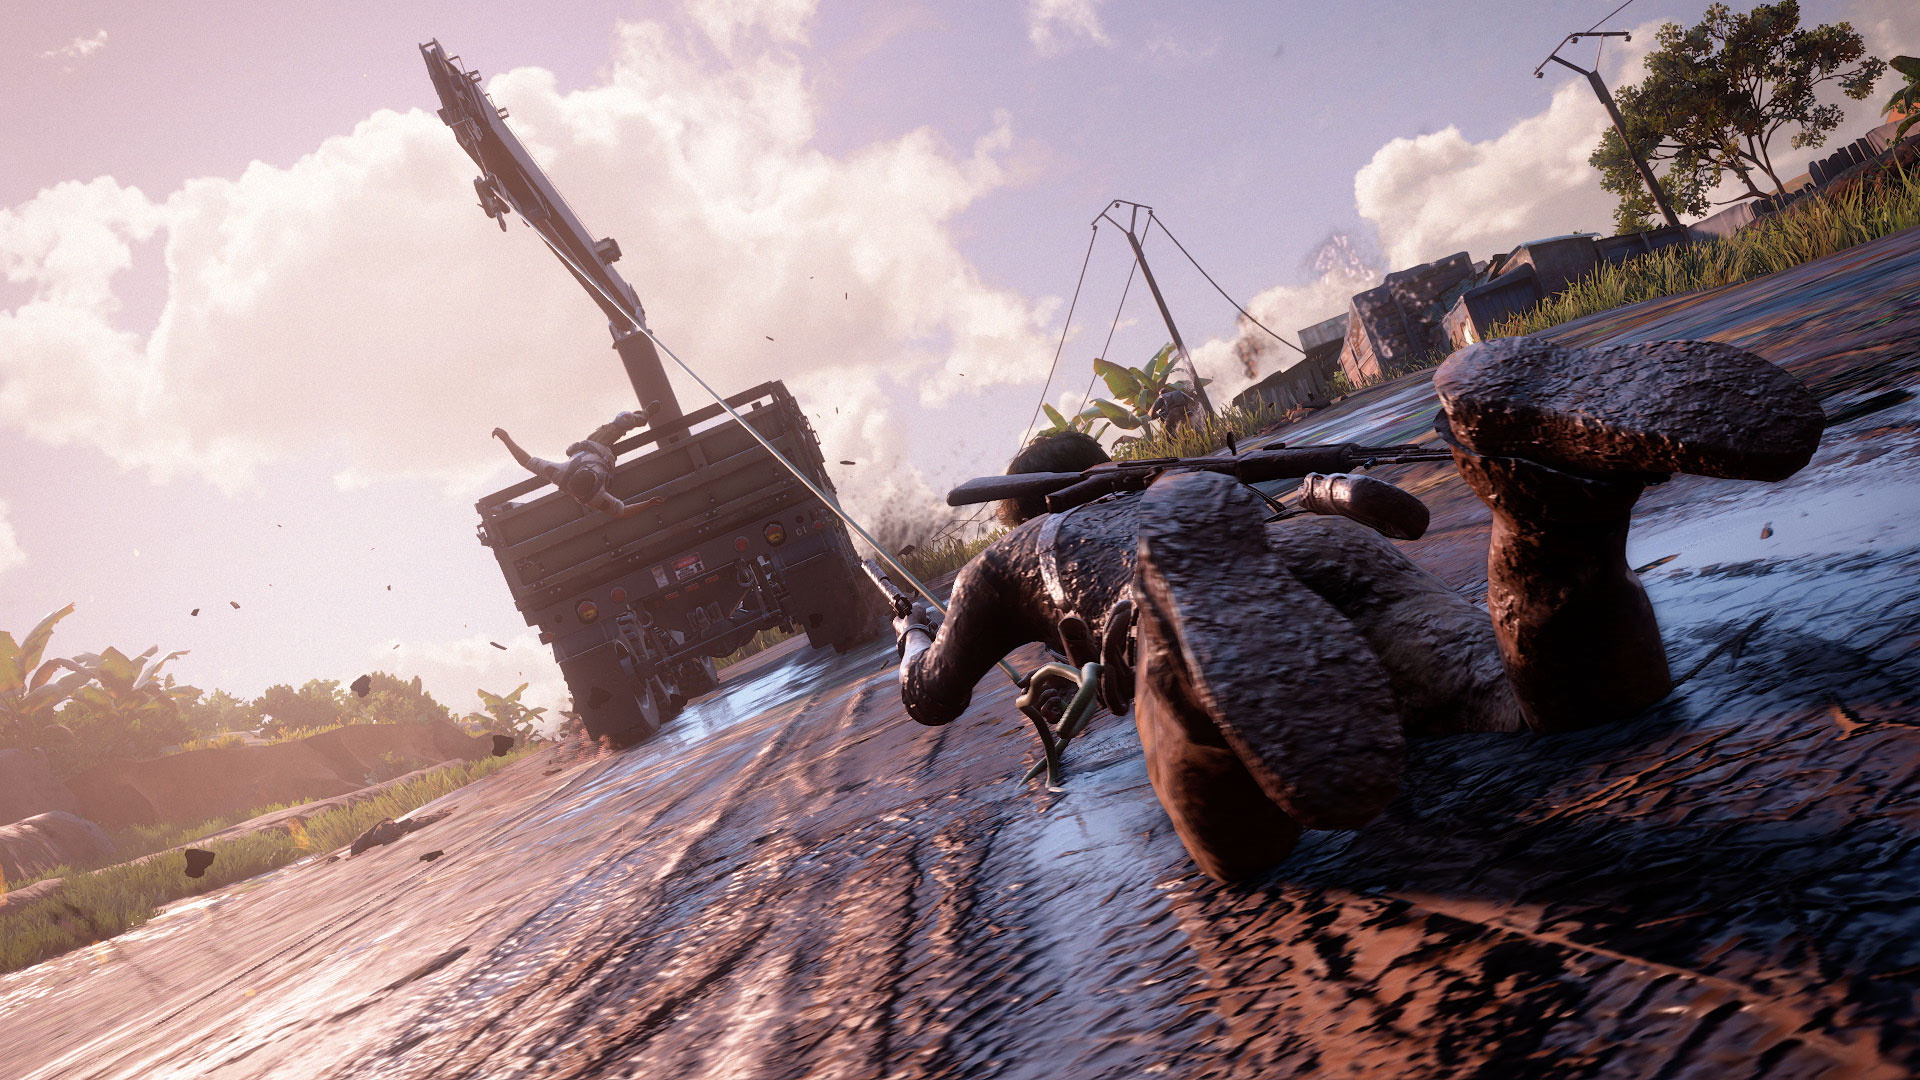 Uncharted 4 Multiplayer Could Feature Split Screen Later On After Release